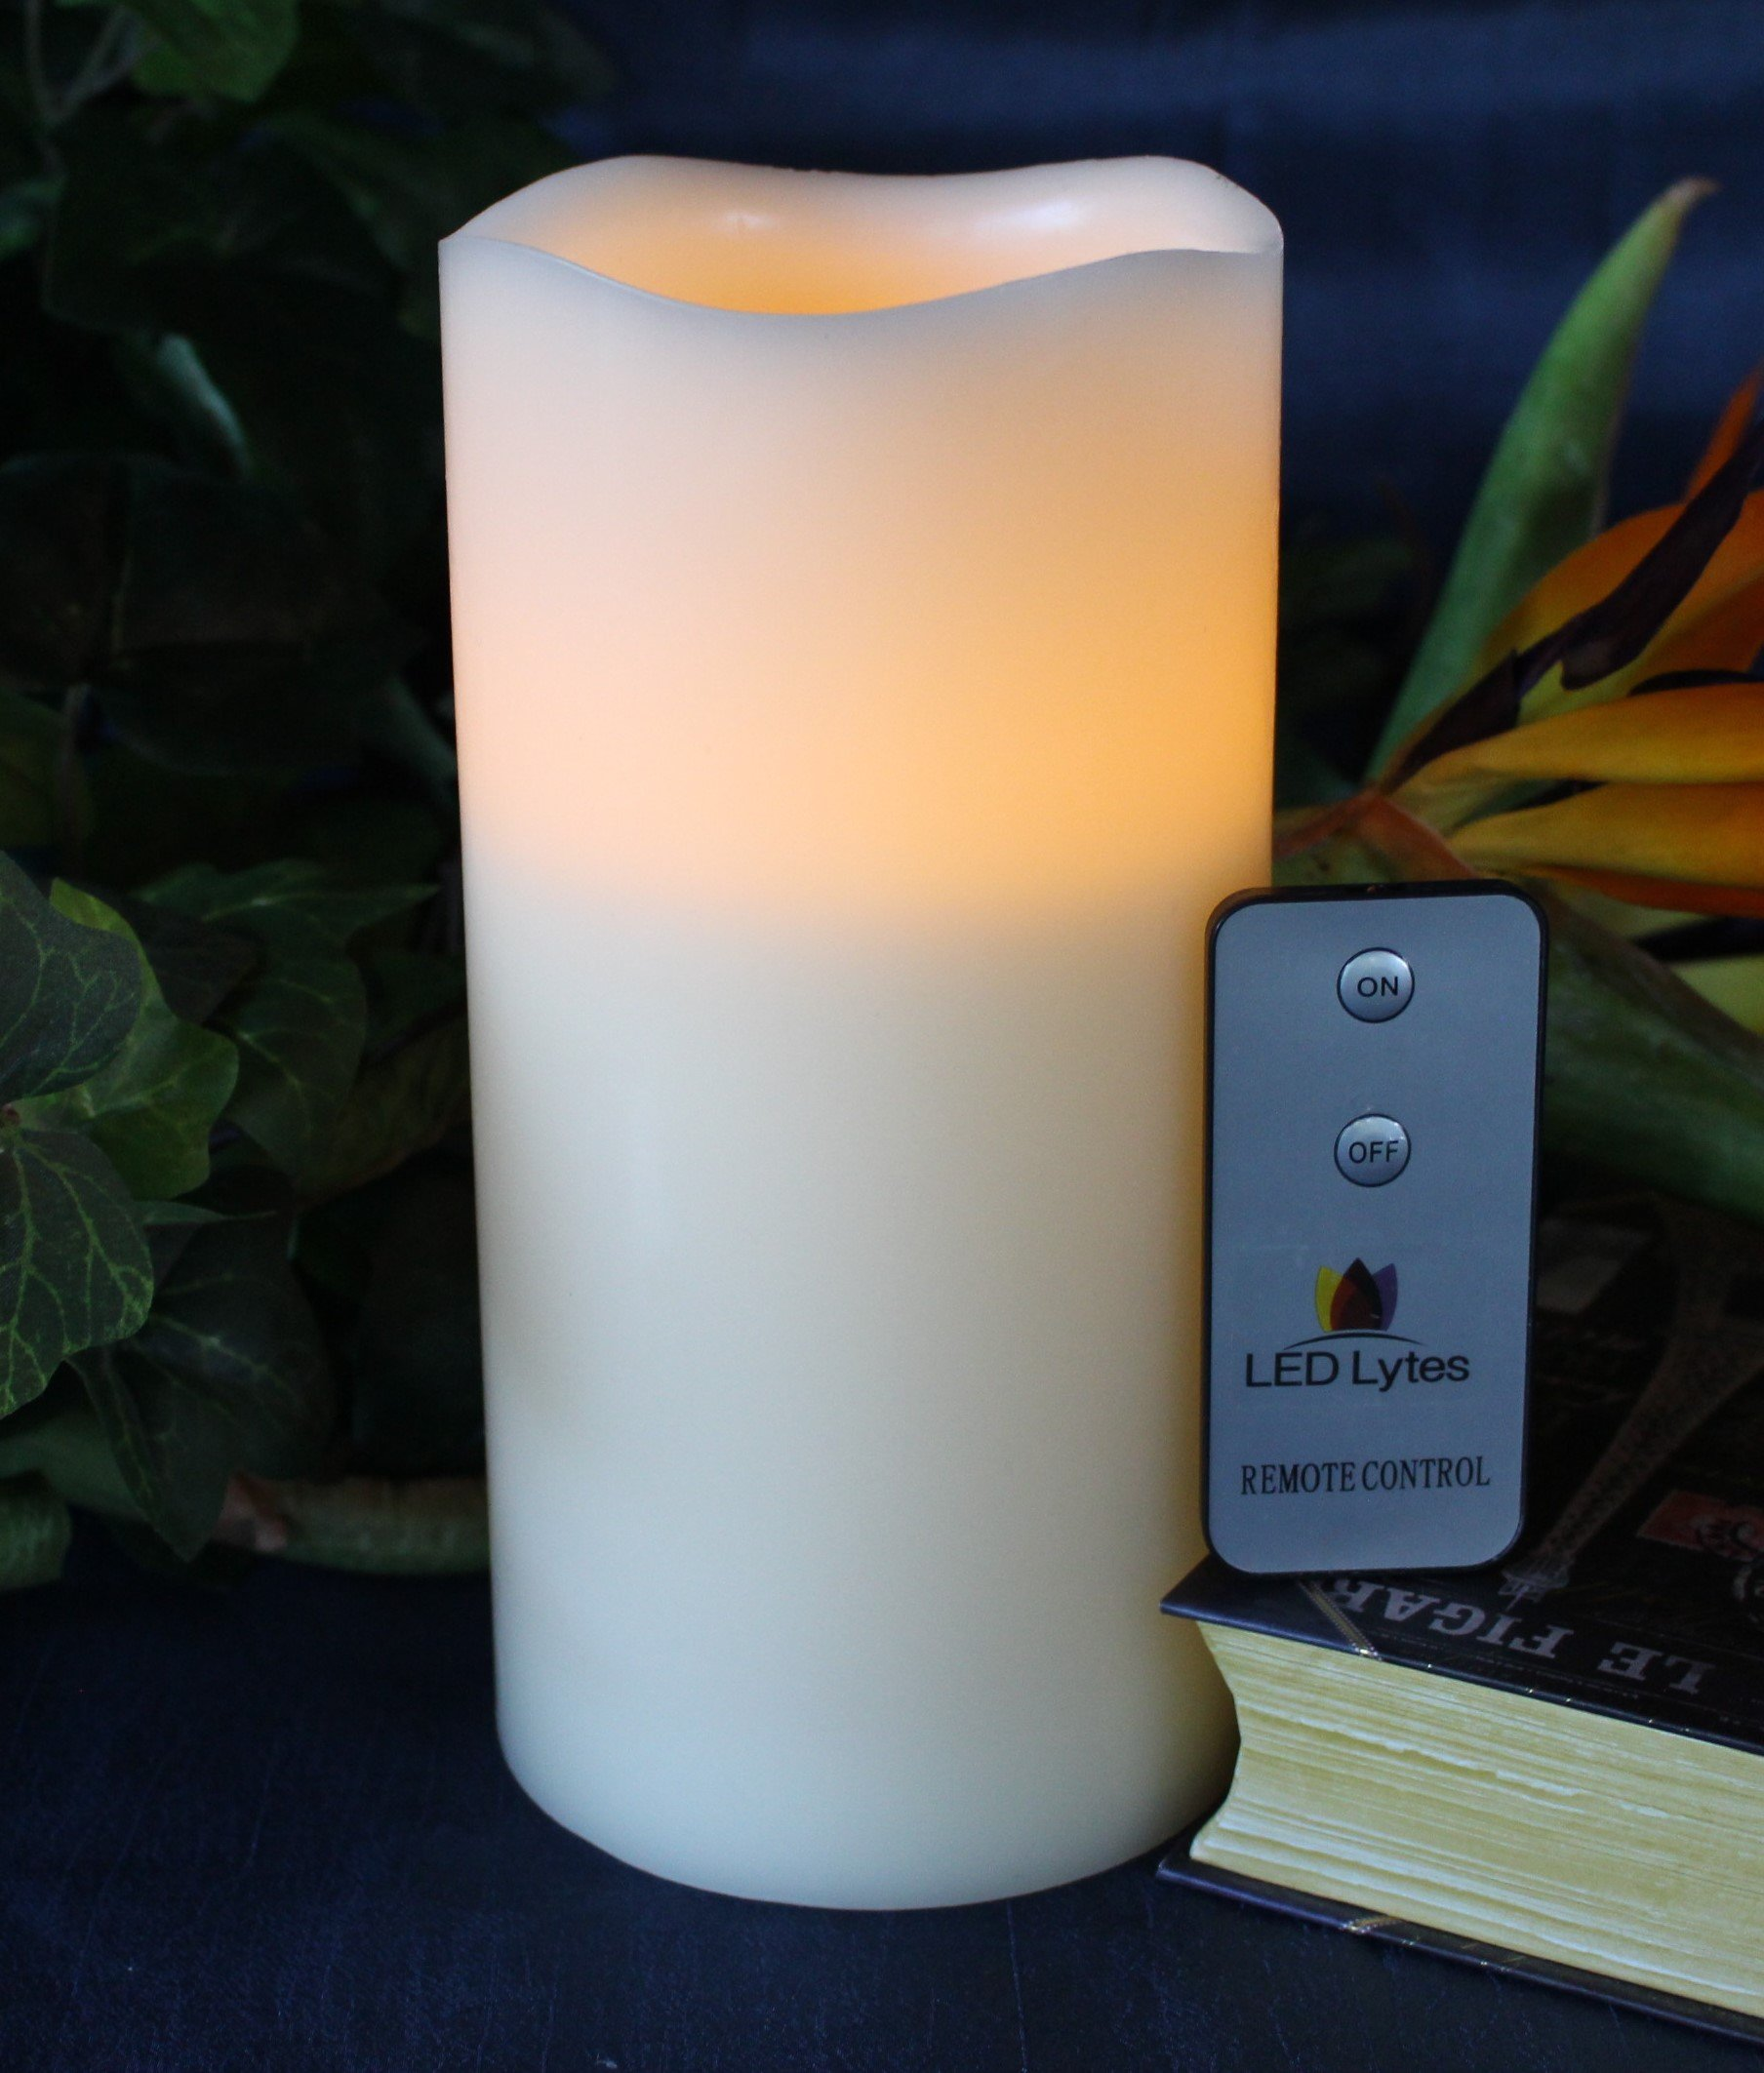 LED Lytes Flameless Candle Flickering - ONE Amber Yellow Pillar Battery Operated with Remote for Parties Weddings and Decorations by LED Lytes (Image #2)